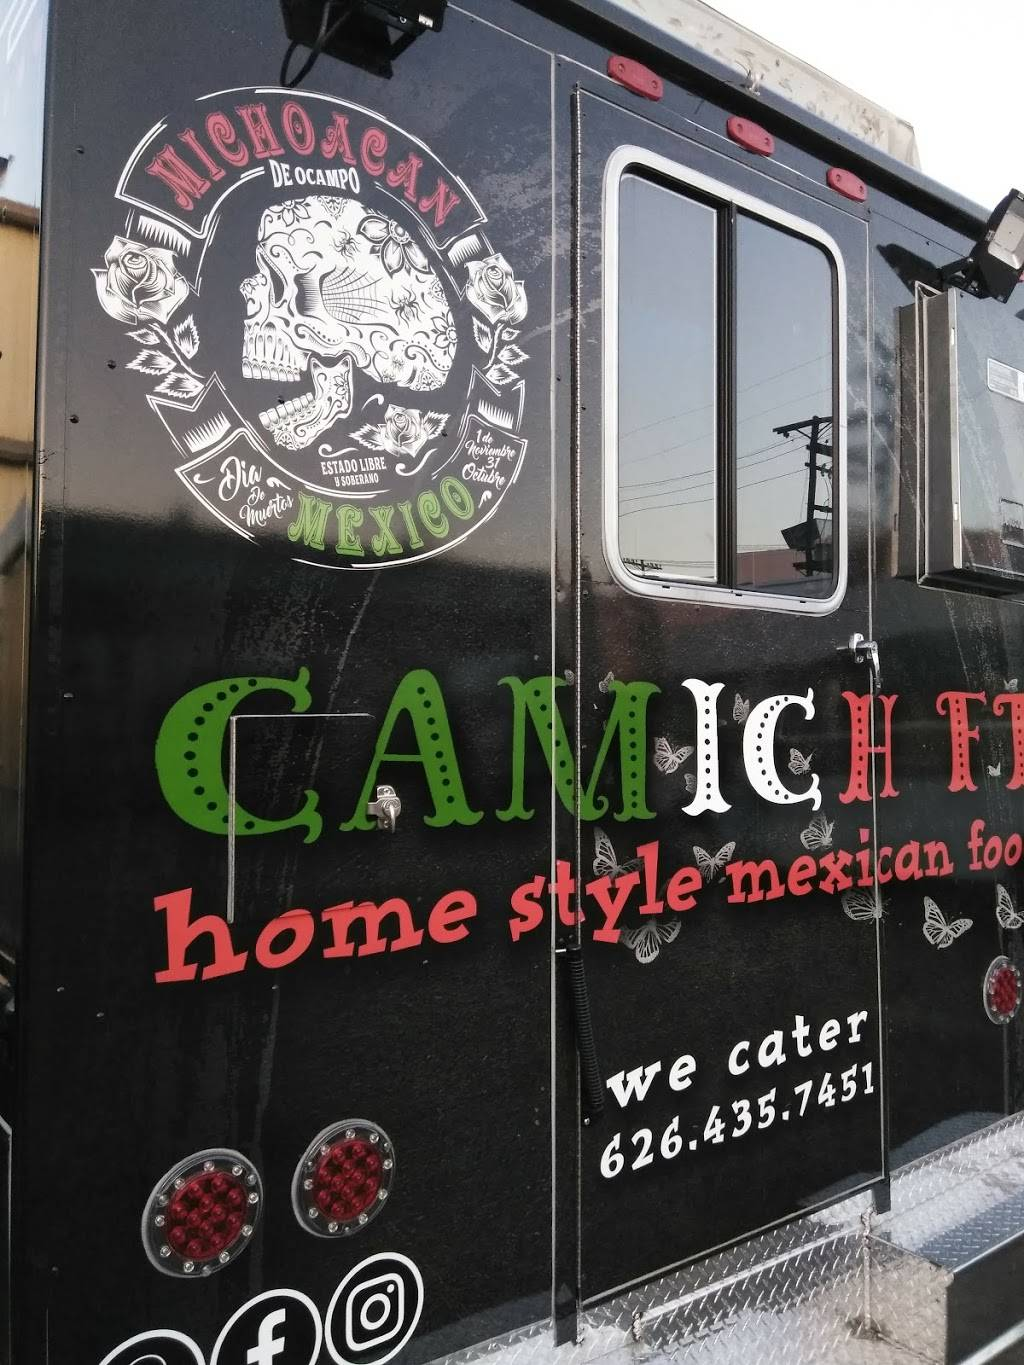 CAMICH FT | restaurant | 15480 Arrow Hwy, Irwindale, CA 91706, USA | 6264357451 OR +1 626-435-7451